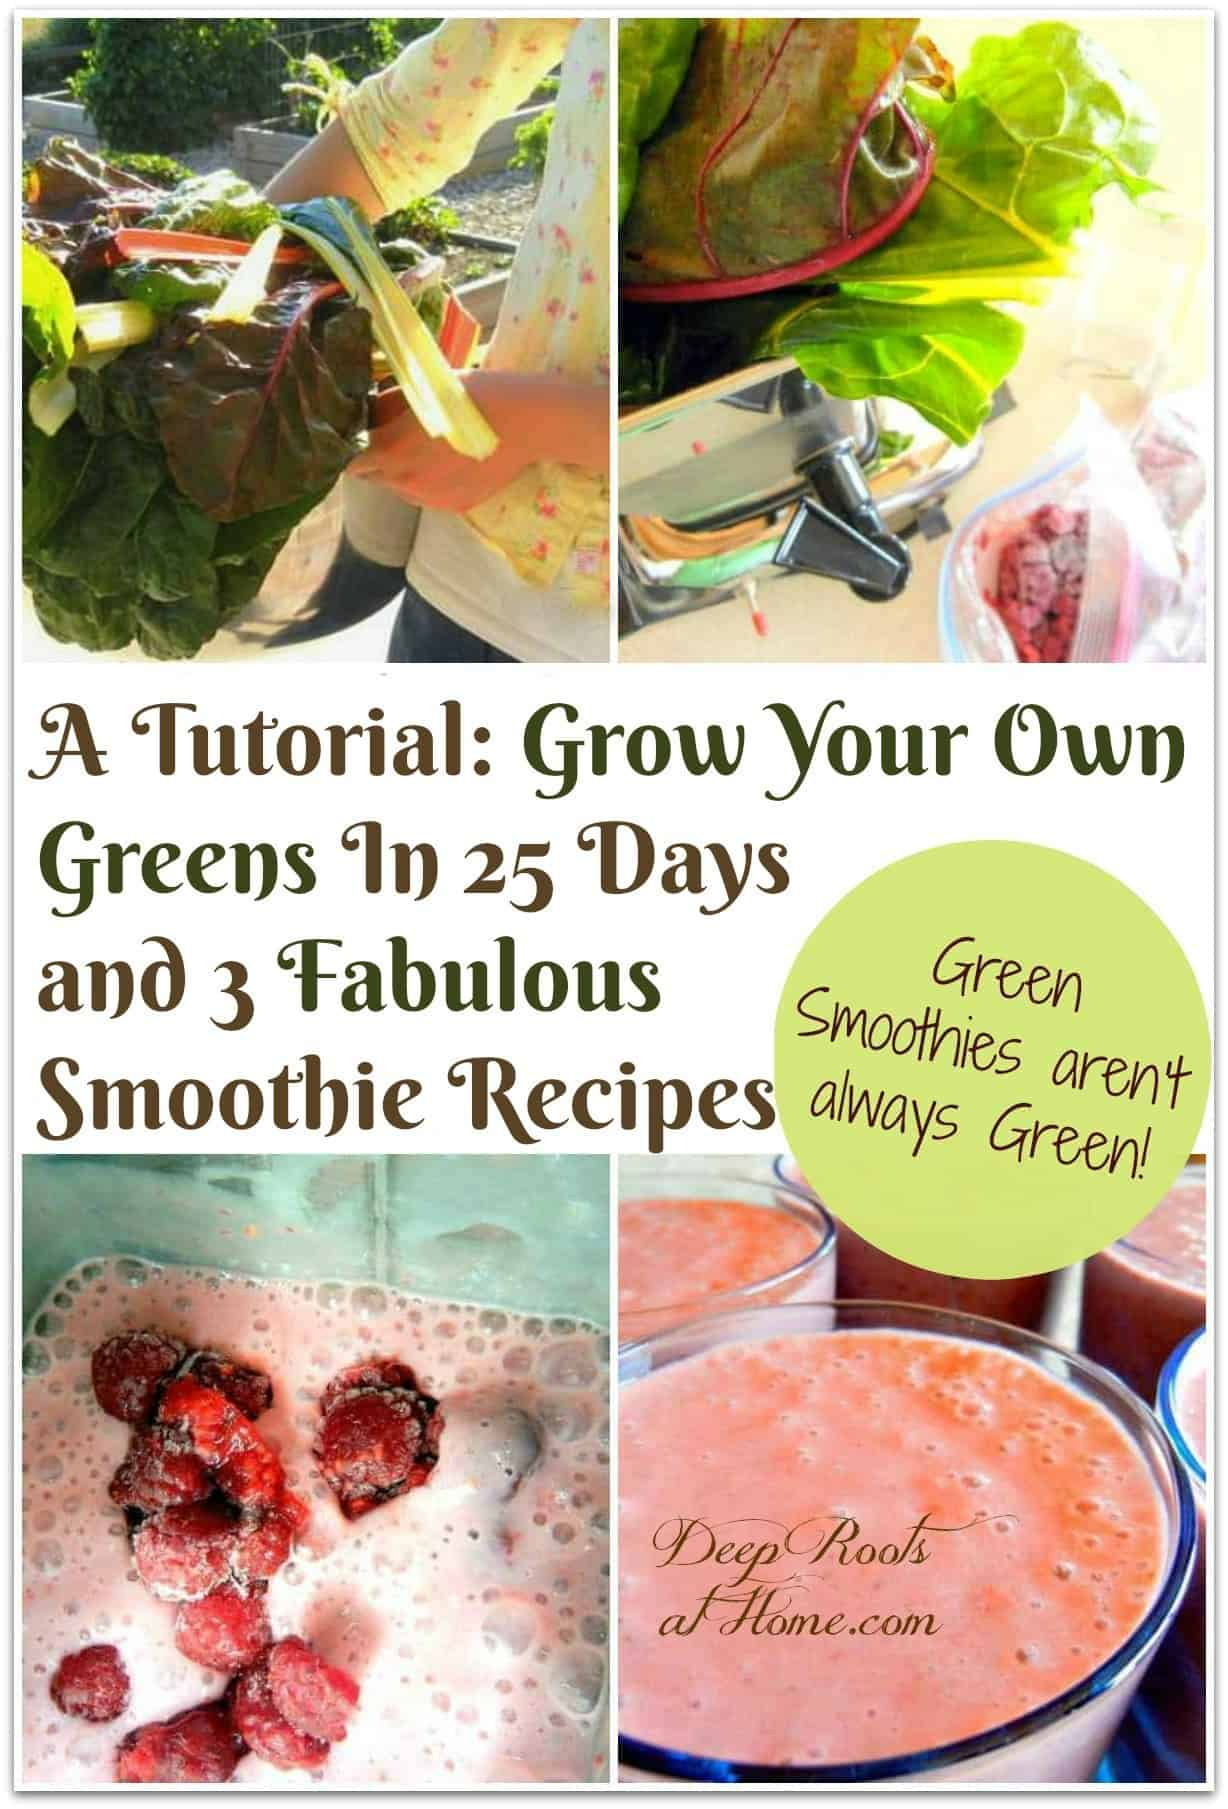 How to Grow Greens Spring or Fall in 25 Days & 3 Fab Smoothie Recipes. A collage of making green smoothies with fresh greens from the garden.